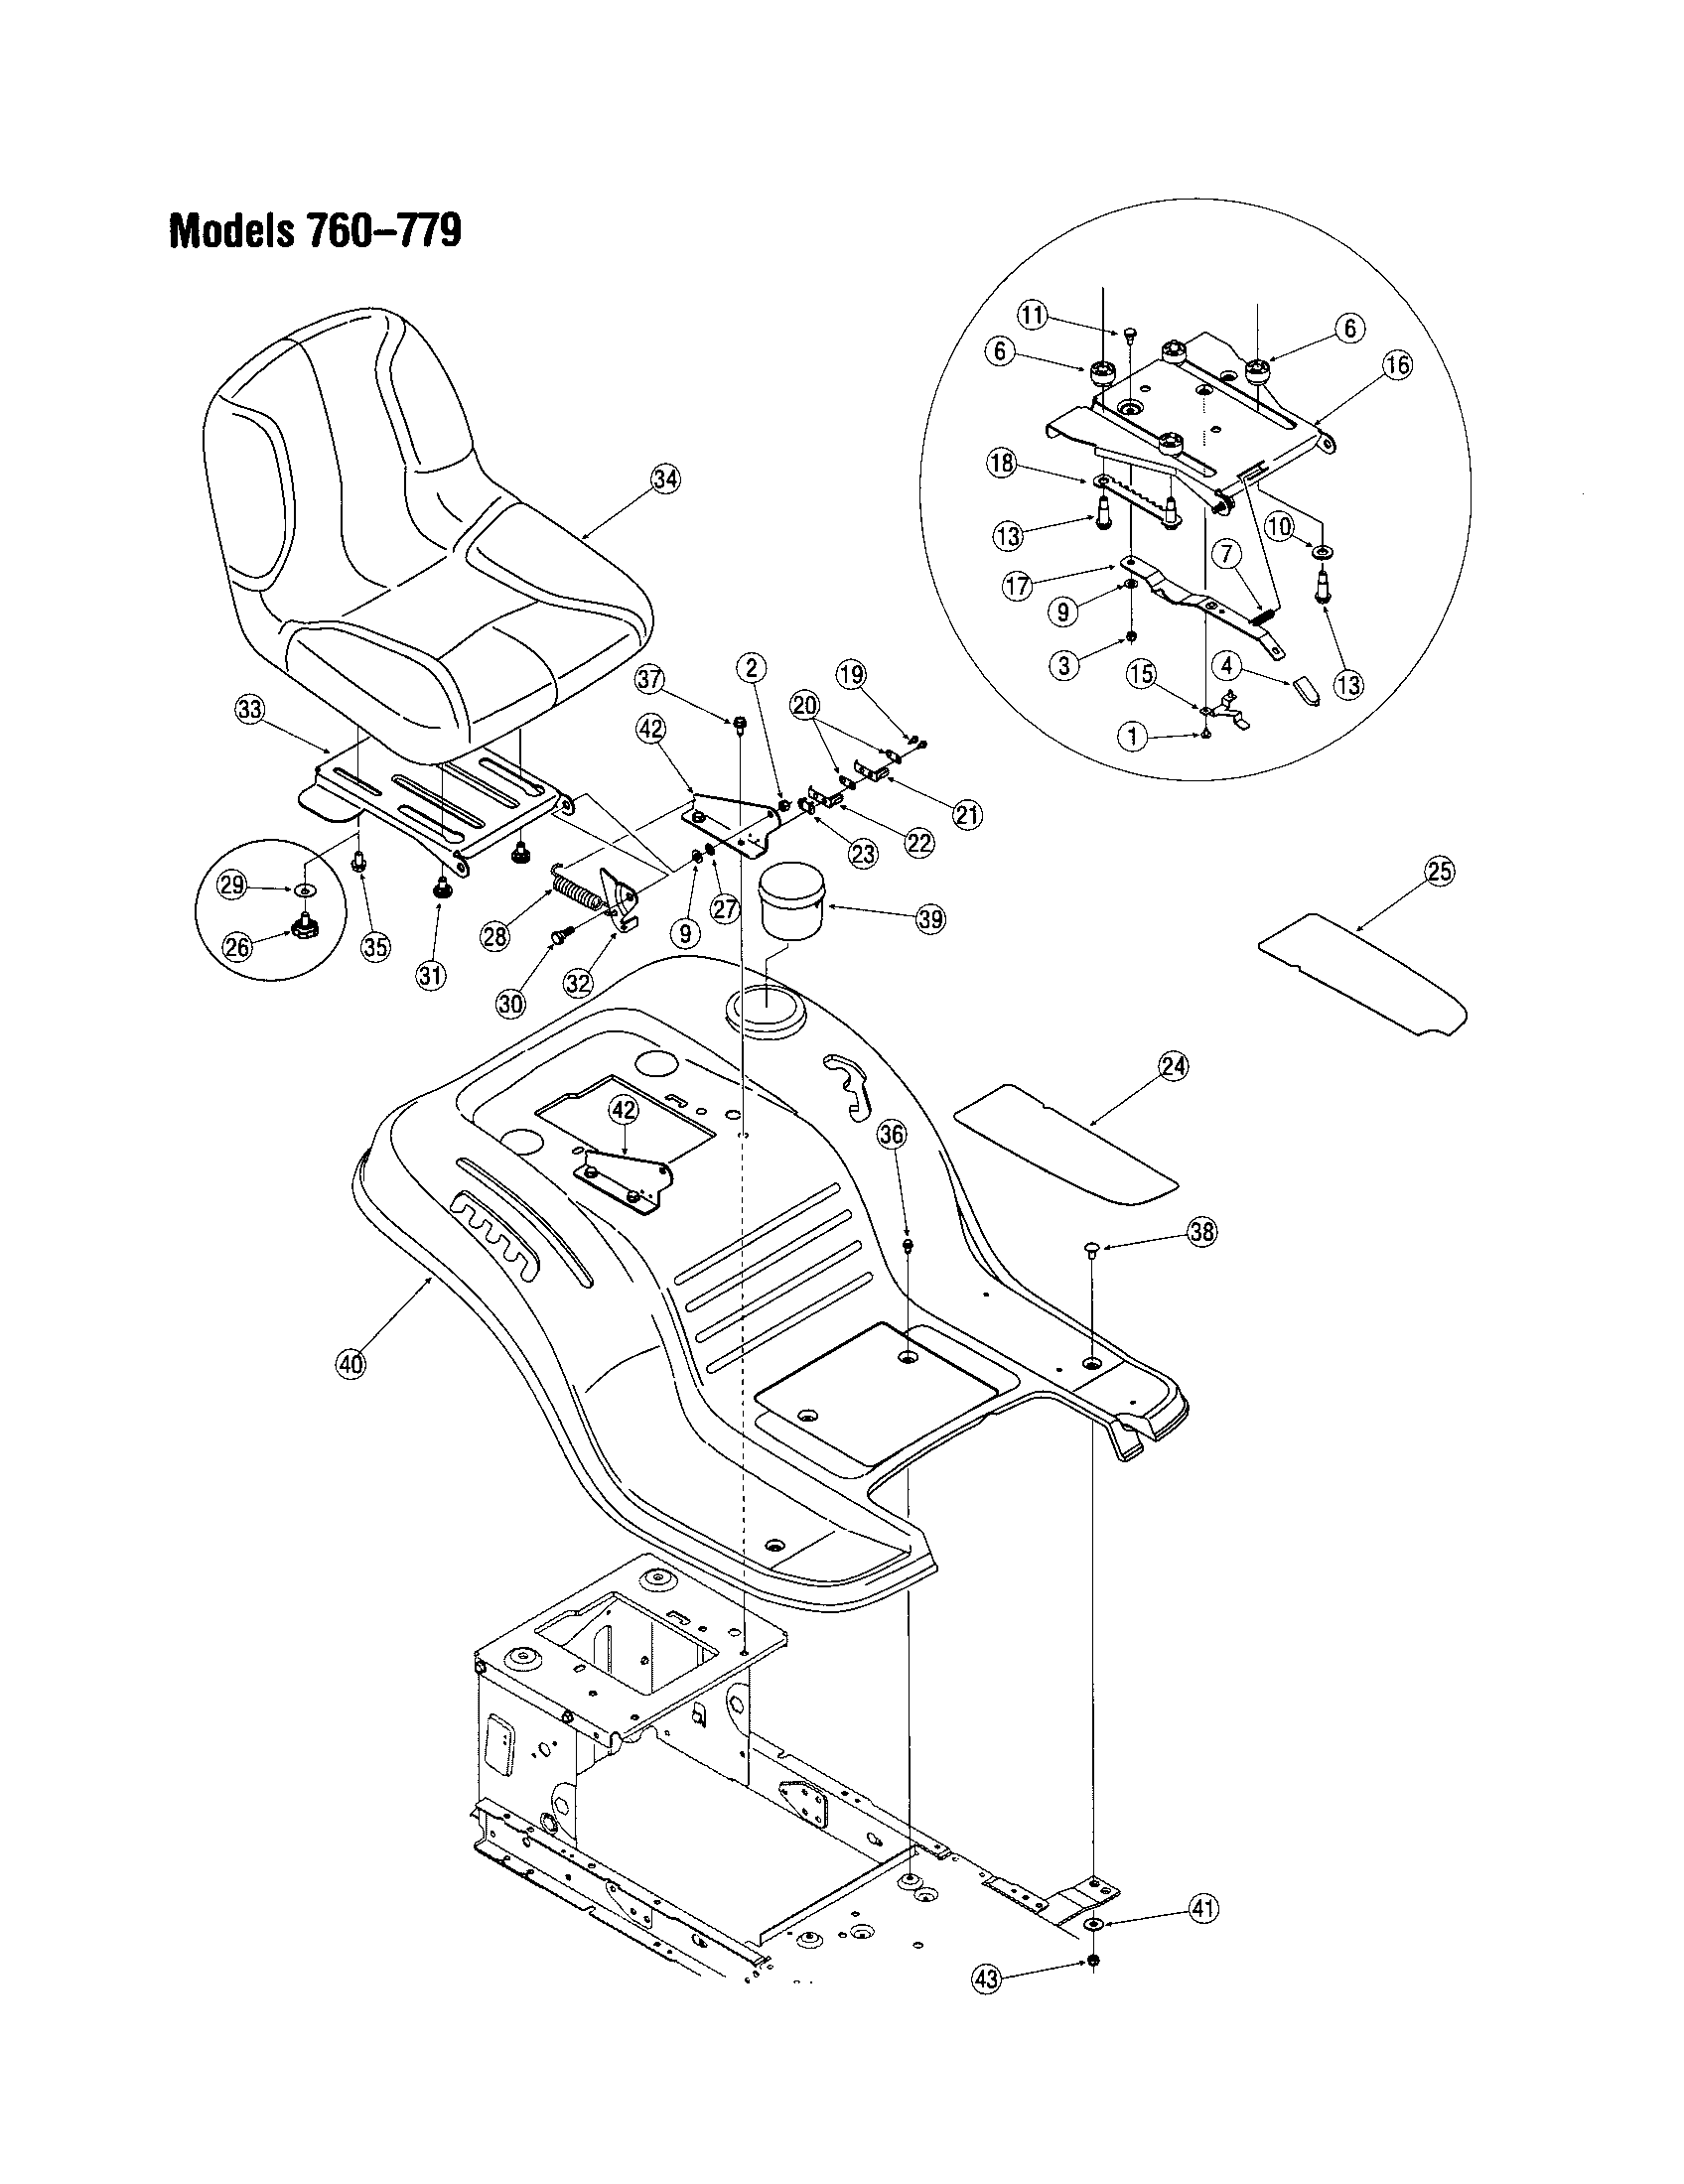 grille 760 770 diagram and parts list for mtd ridingmowertractor